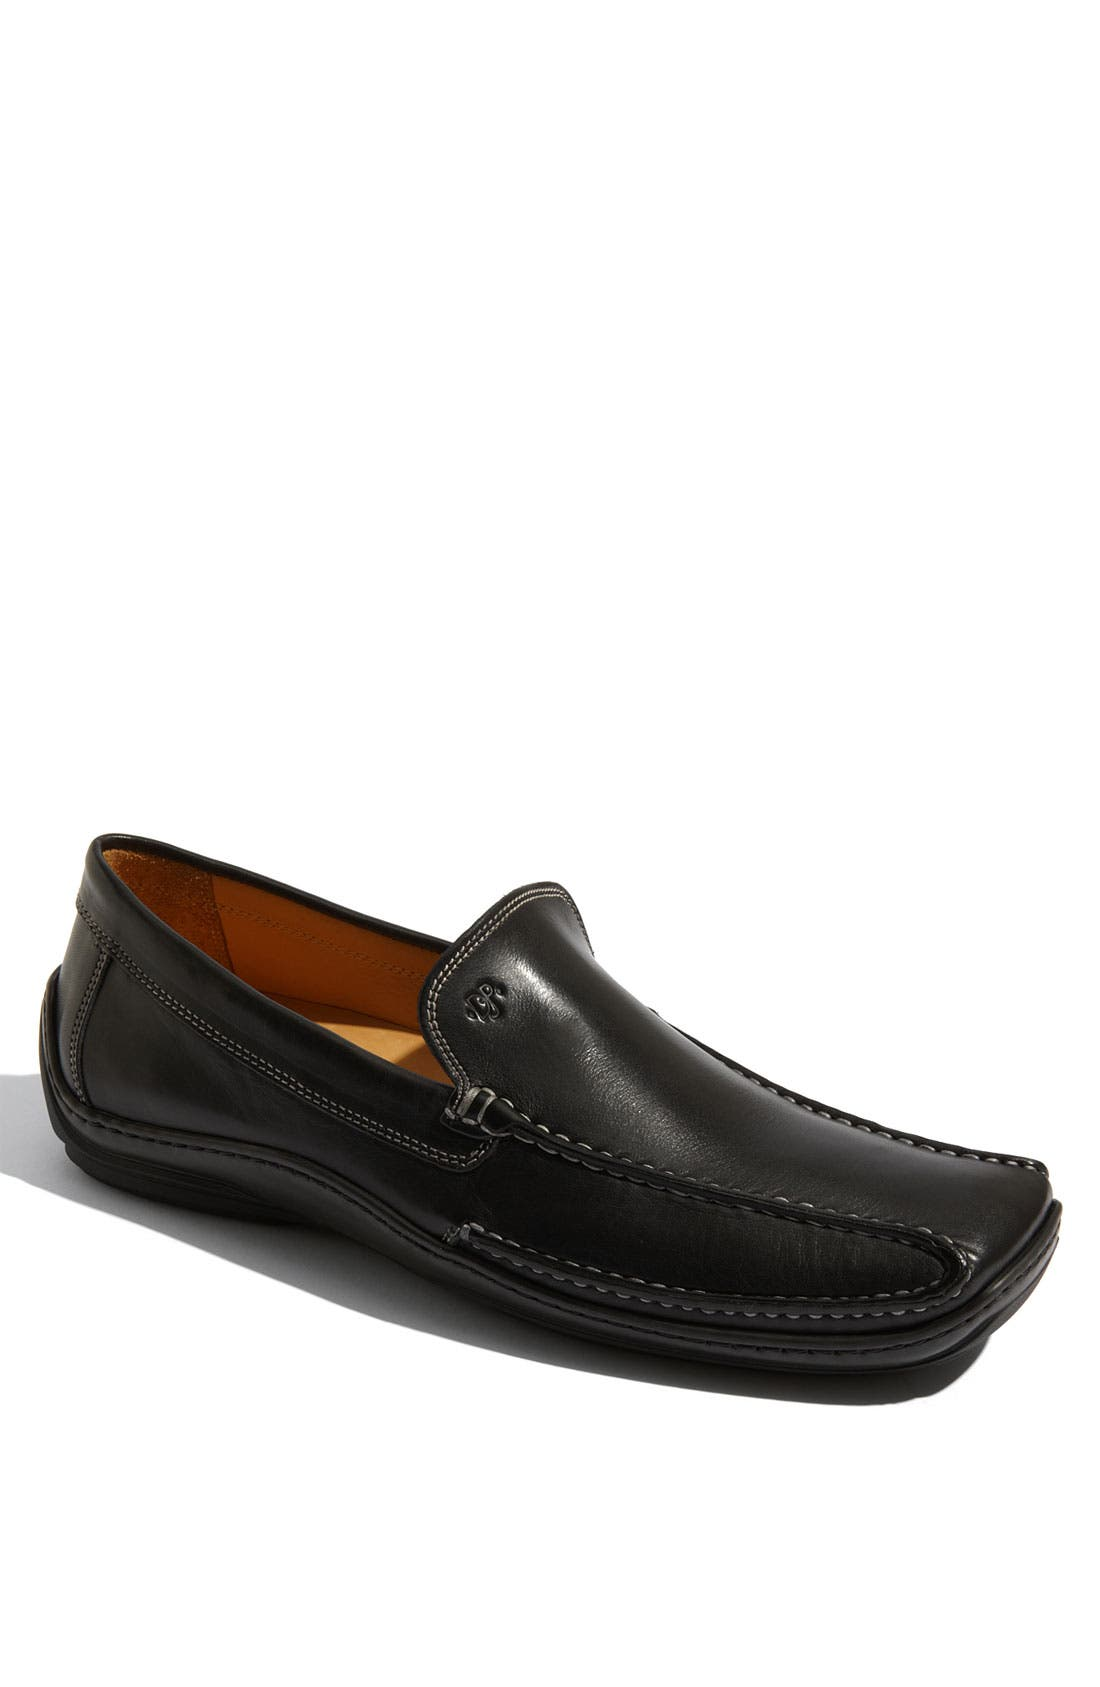 Main Image - Donald J Pliner 'Eive' Slip-On